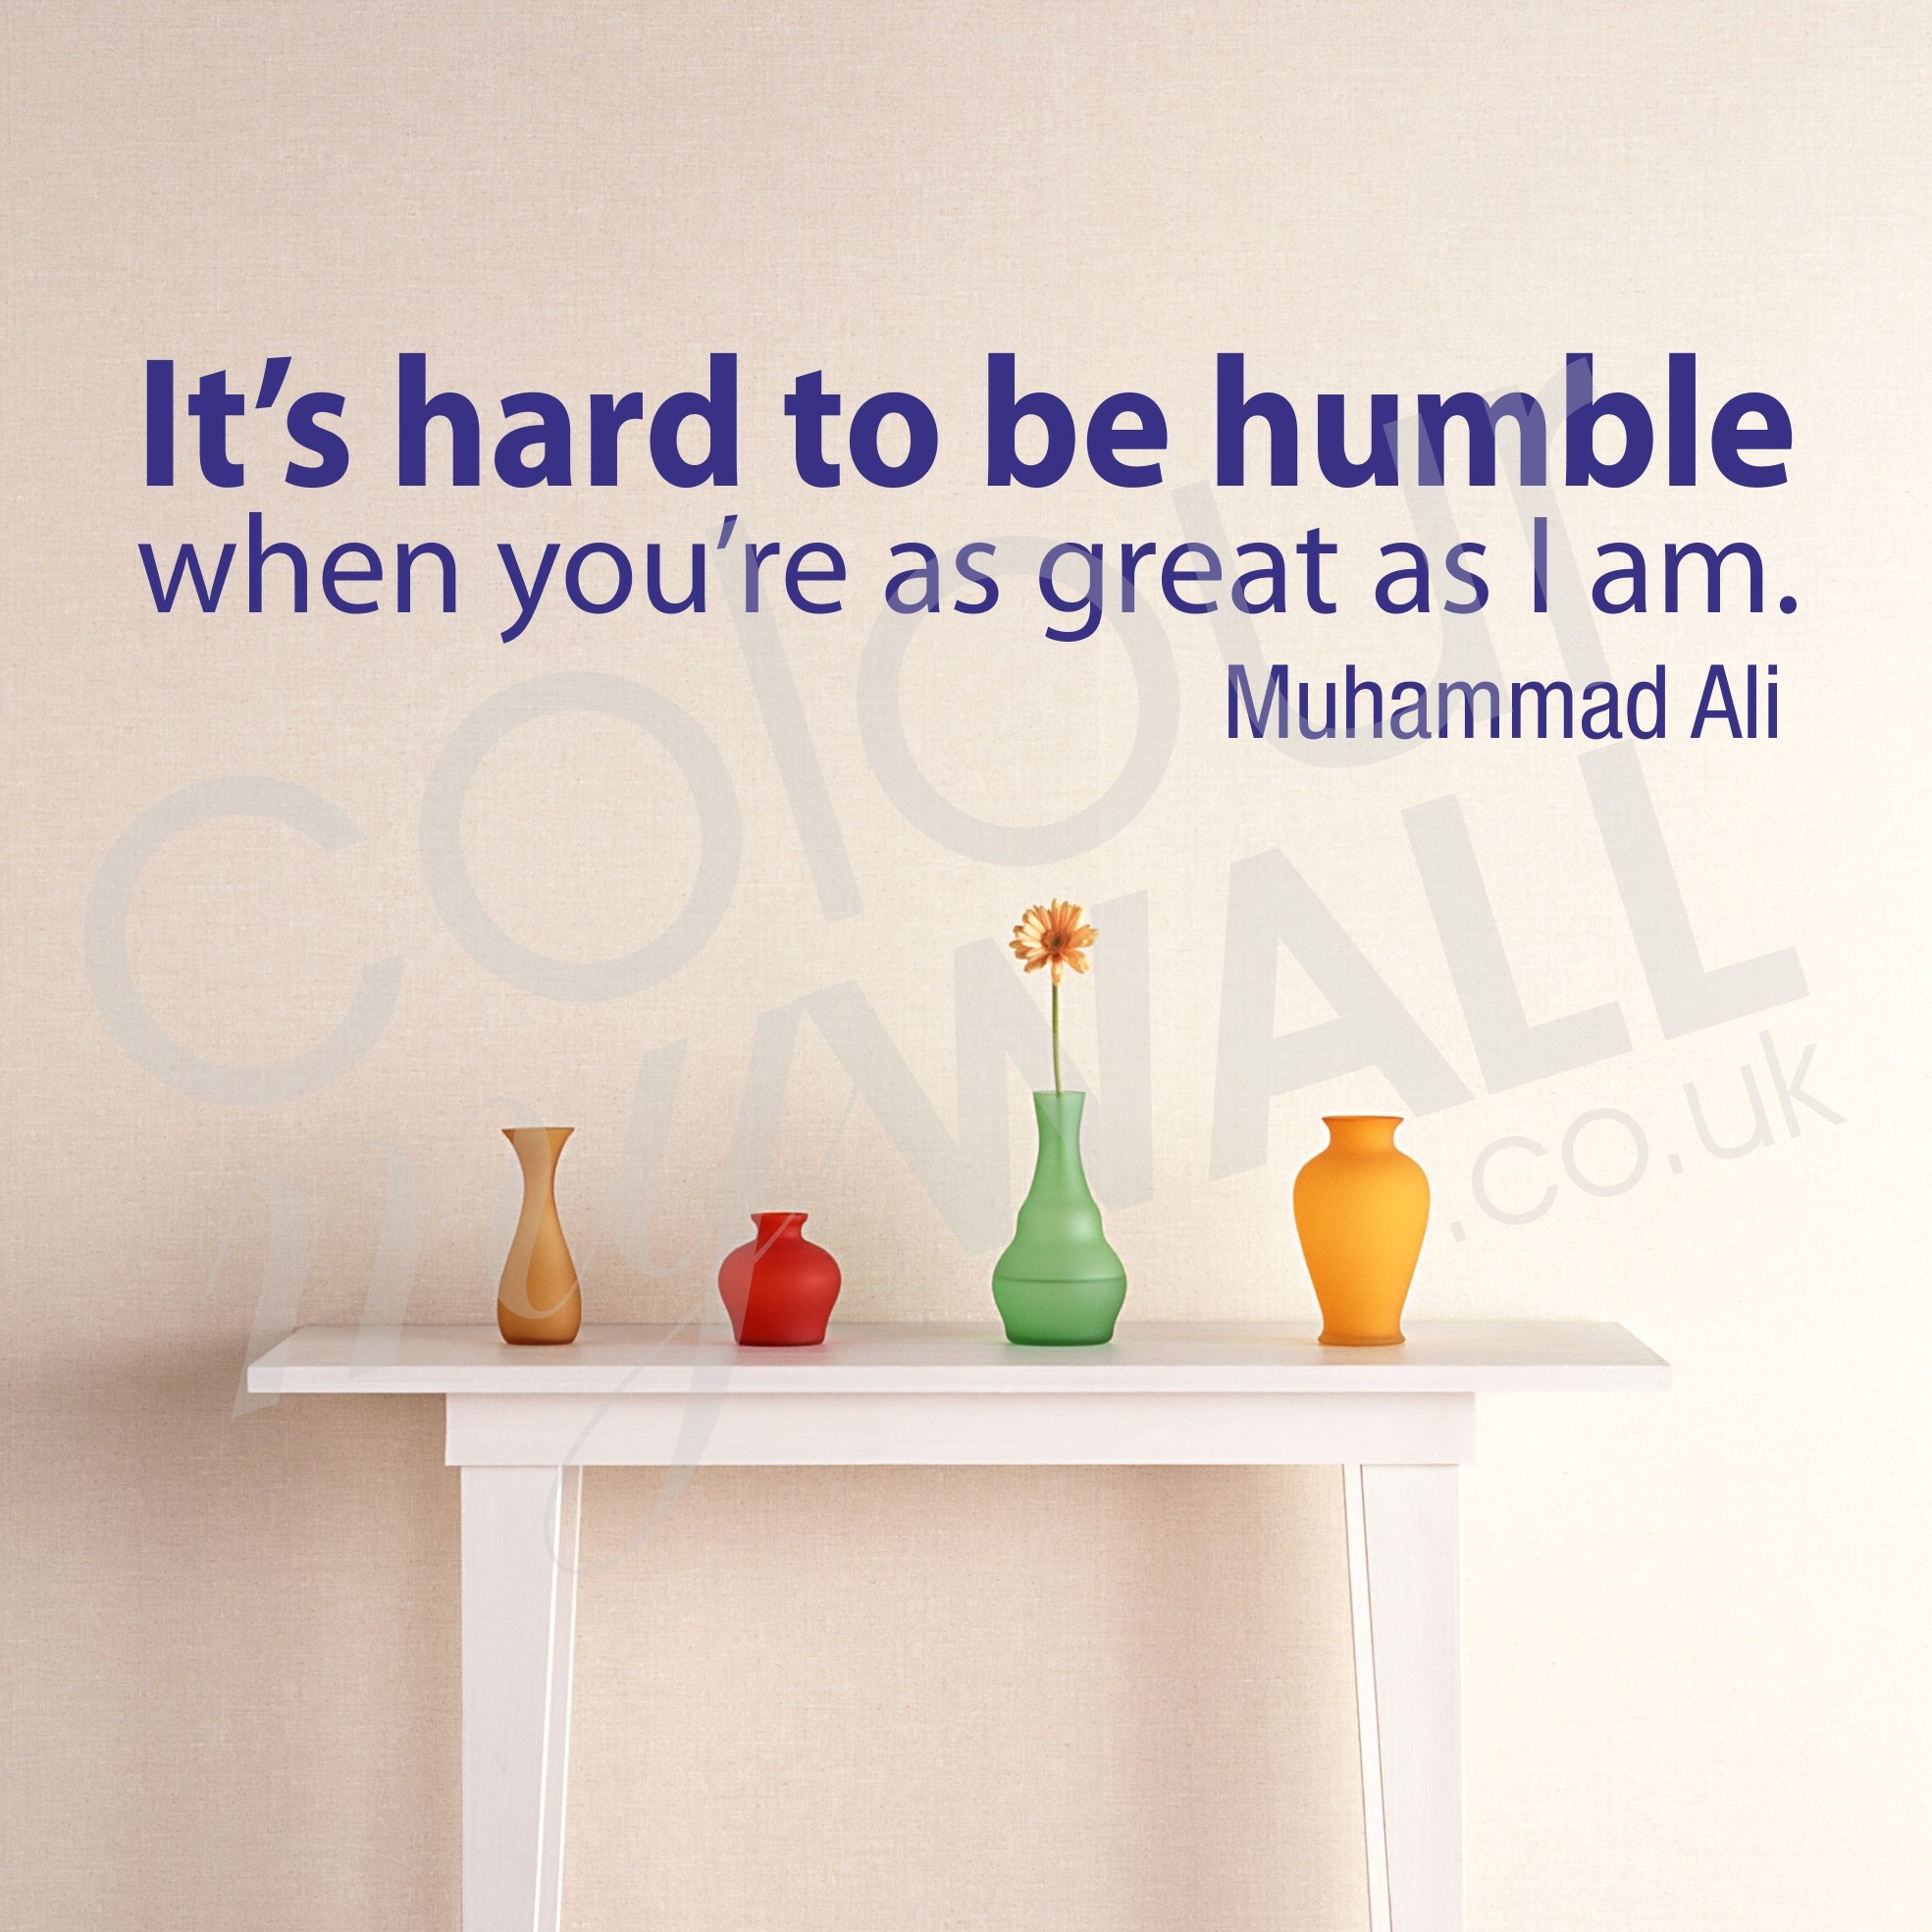 Quotes About Humble People: Funny Quotes About Being Humble. QuotesGram